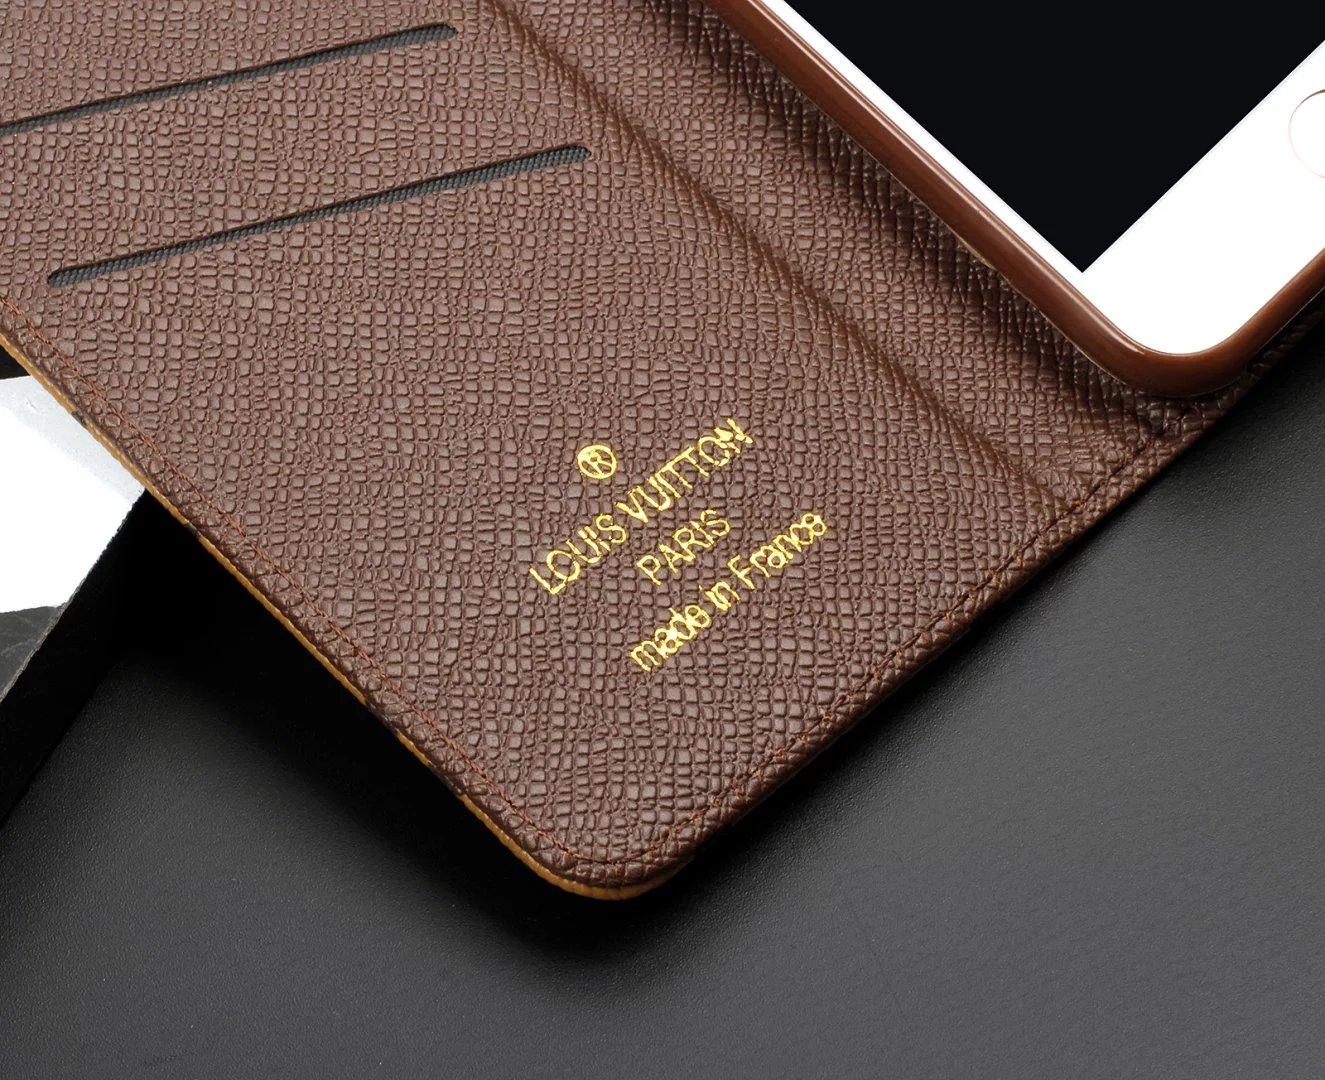 iphone hülle kaufen iphone filzhülle Louis Vuitton iphone 8 Plus hüllen iphone cover drucken fotogeschenke handyhülle iphone 8 Plushülle iphone 8 Plus leder ca8 Plus apple iphone 8 Plus ilikon hülle iphone hülle 8 Pluslber machen